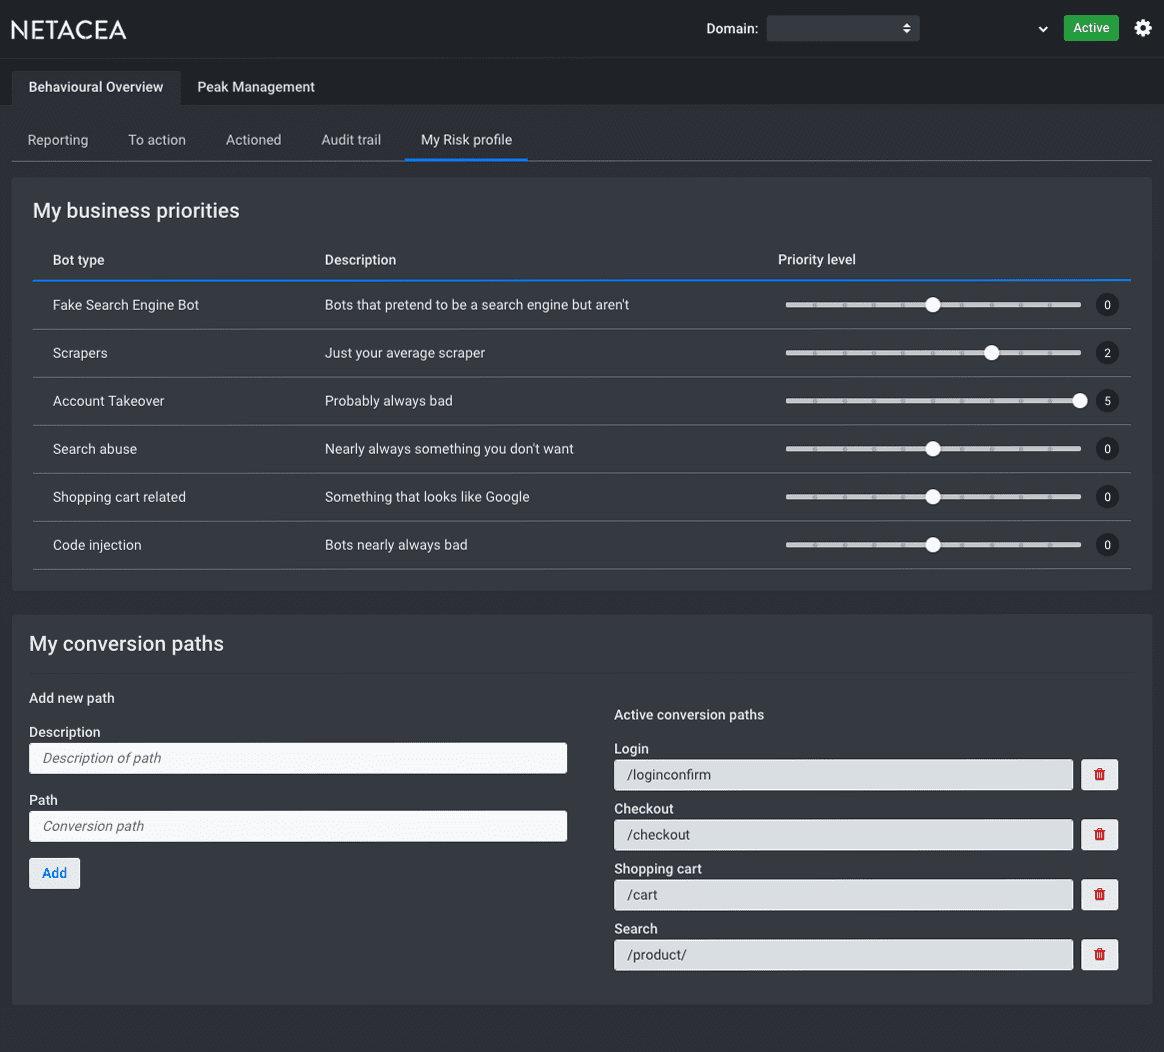 Netacea Risk Dashboard Profile - Retailer Credential Stuffing